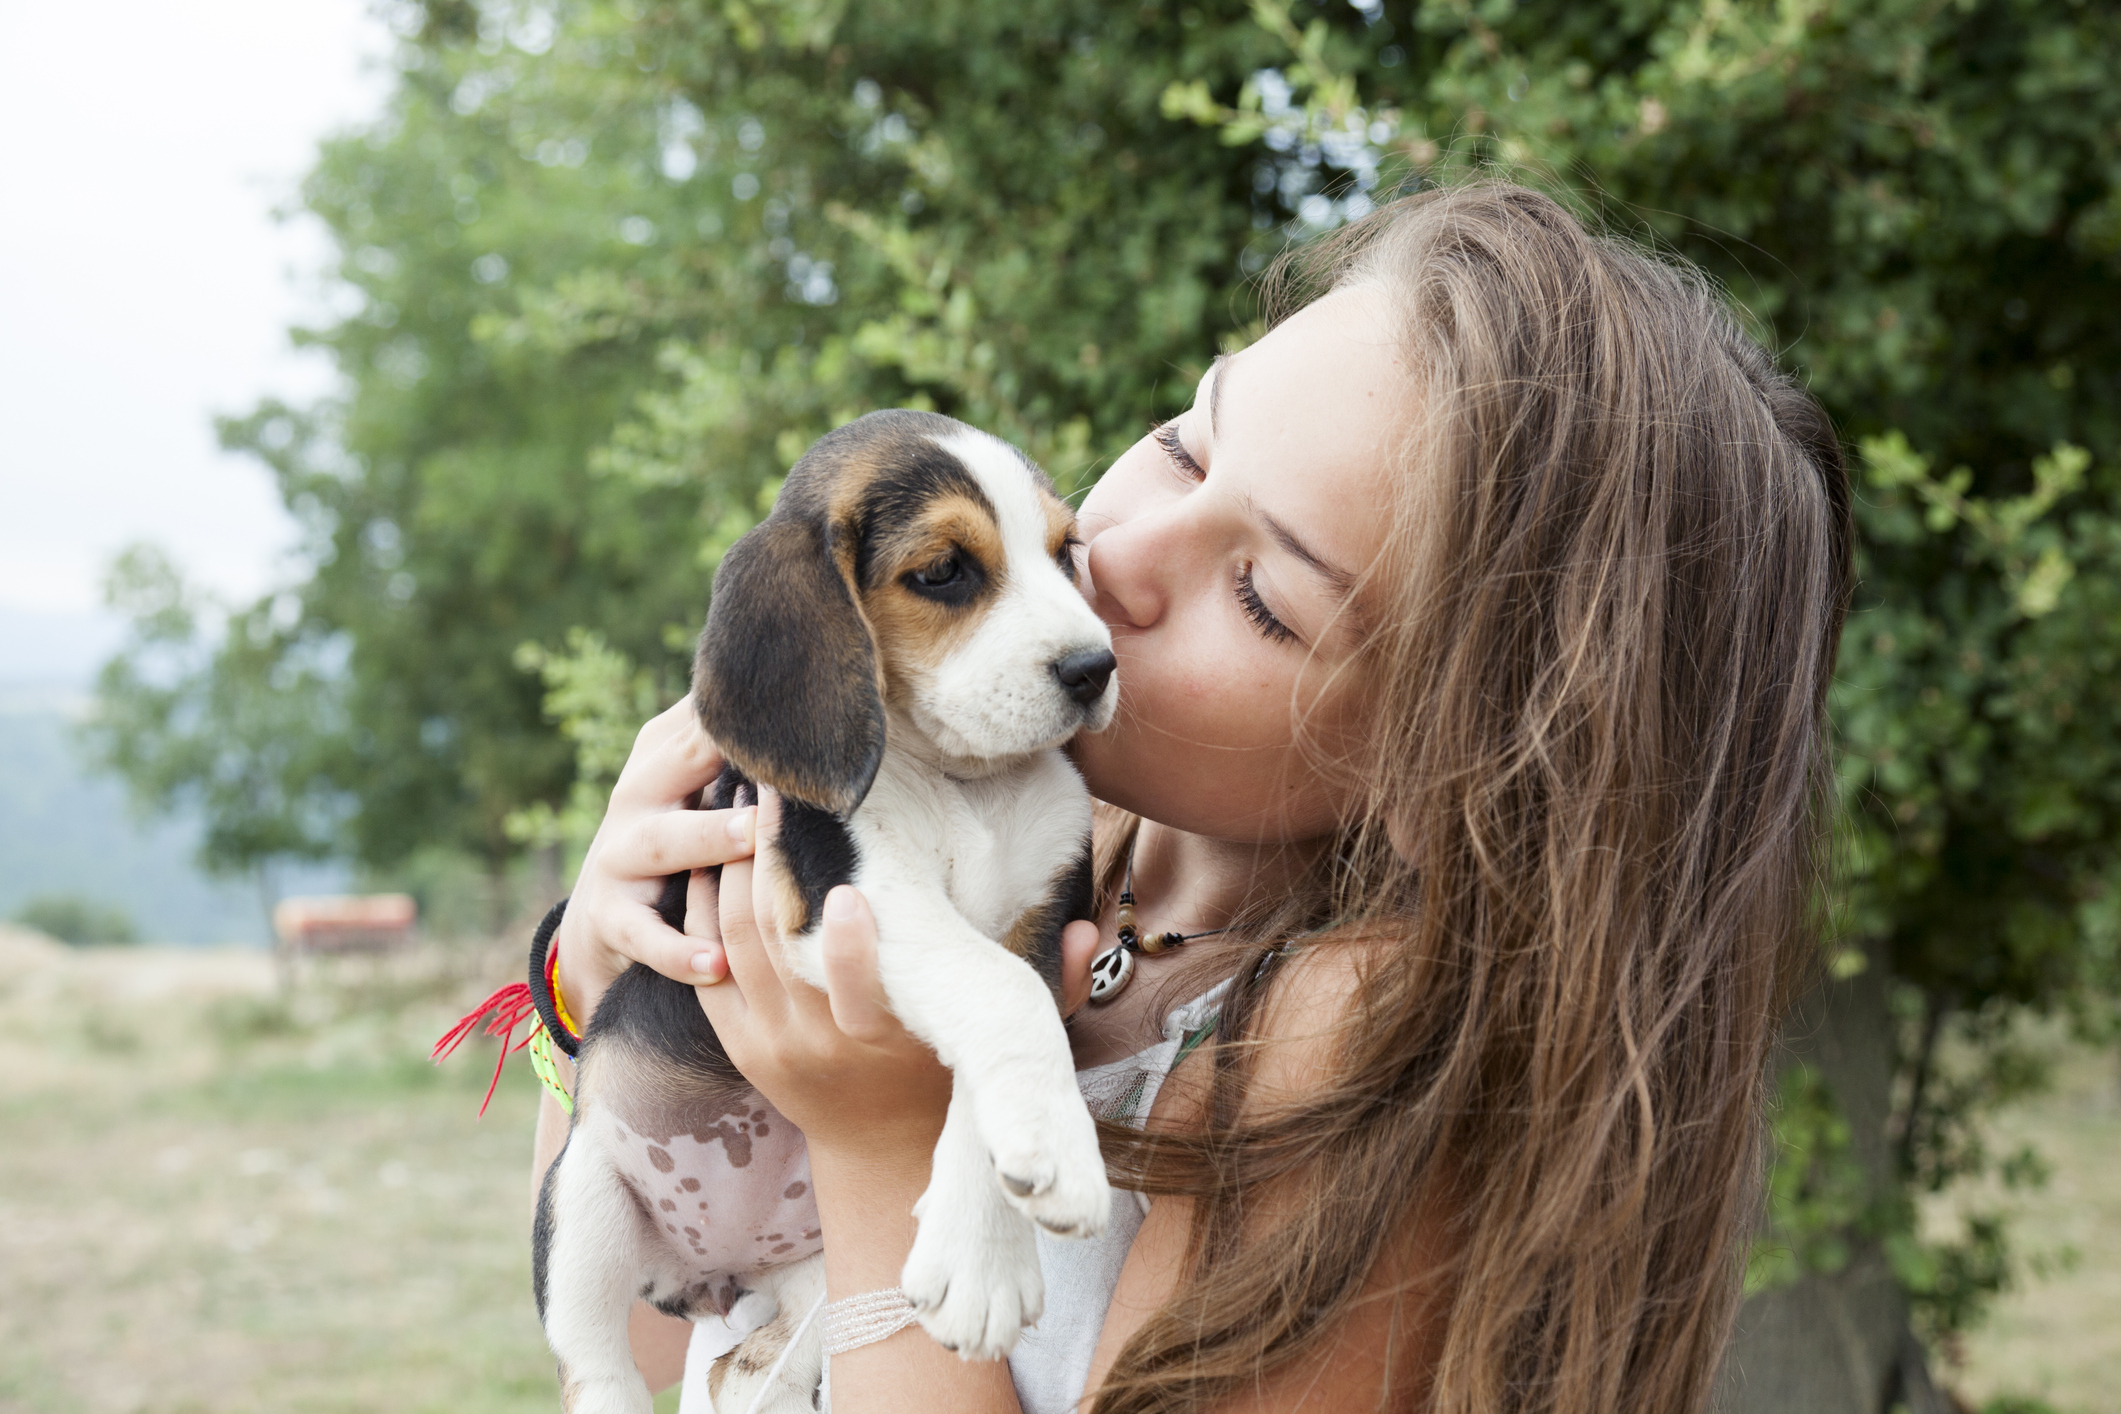 Dogs are the most kissable pet - Serious Facts